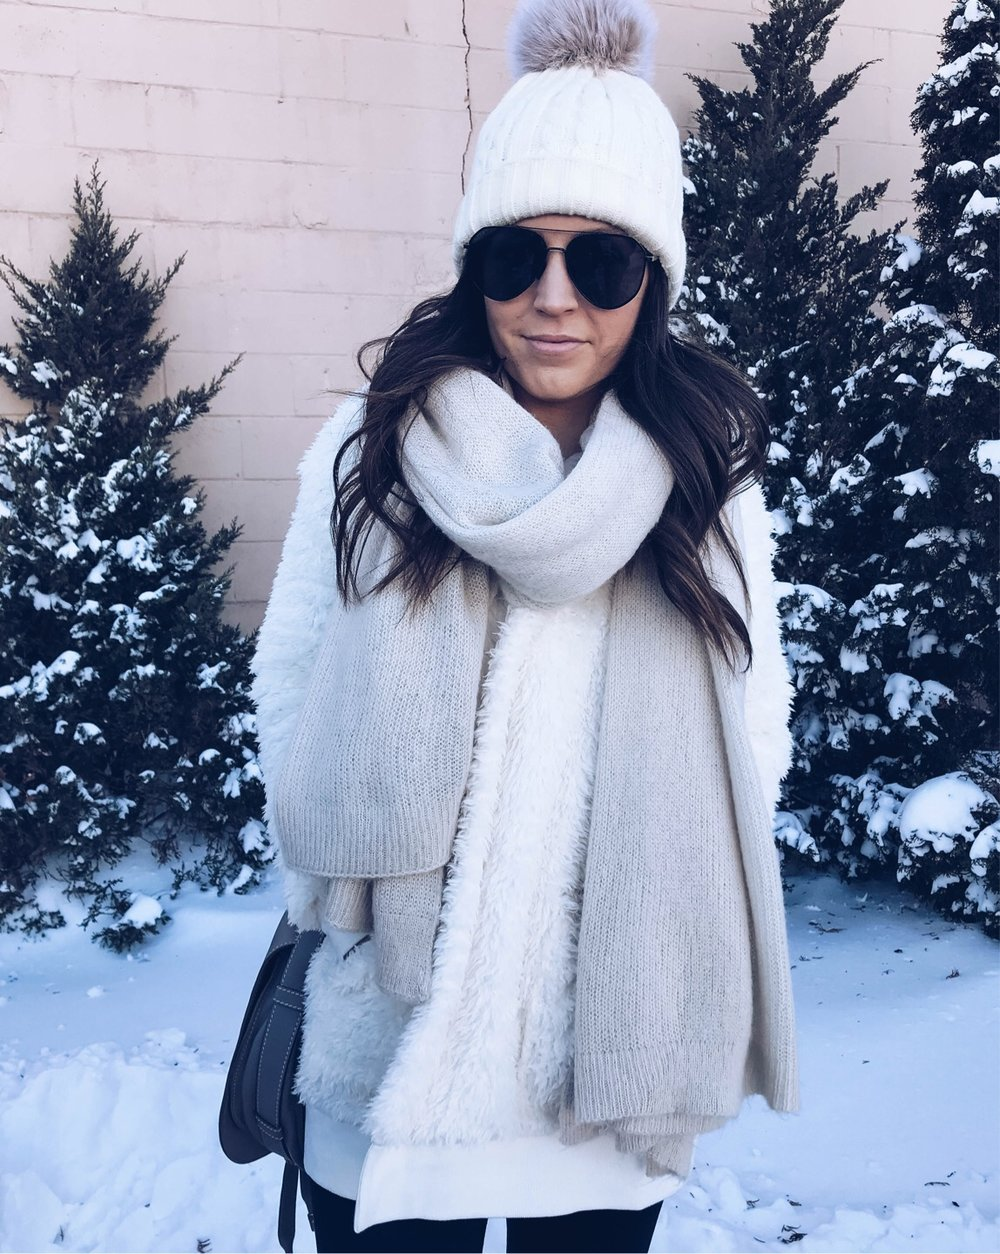 Instagram Round Up | Pine Barren Beauty | winter outfit idea, cozy outfit idea, cozy vibes, teddy coat & oversized scarf, black aviator sunglasses, pom beanie